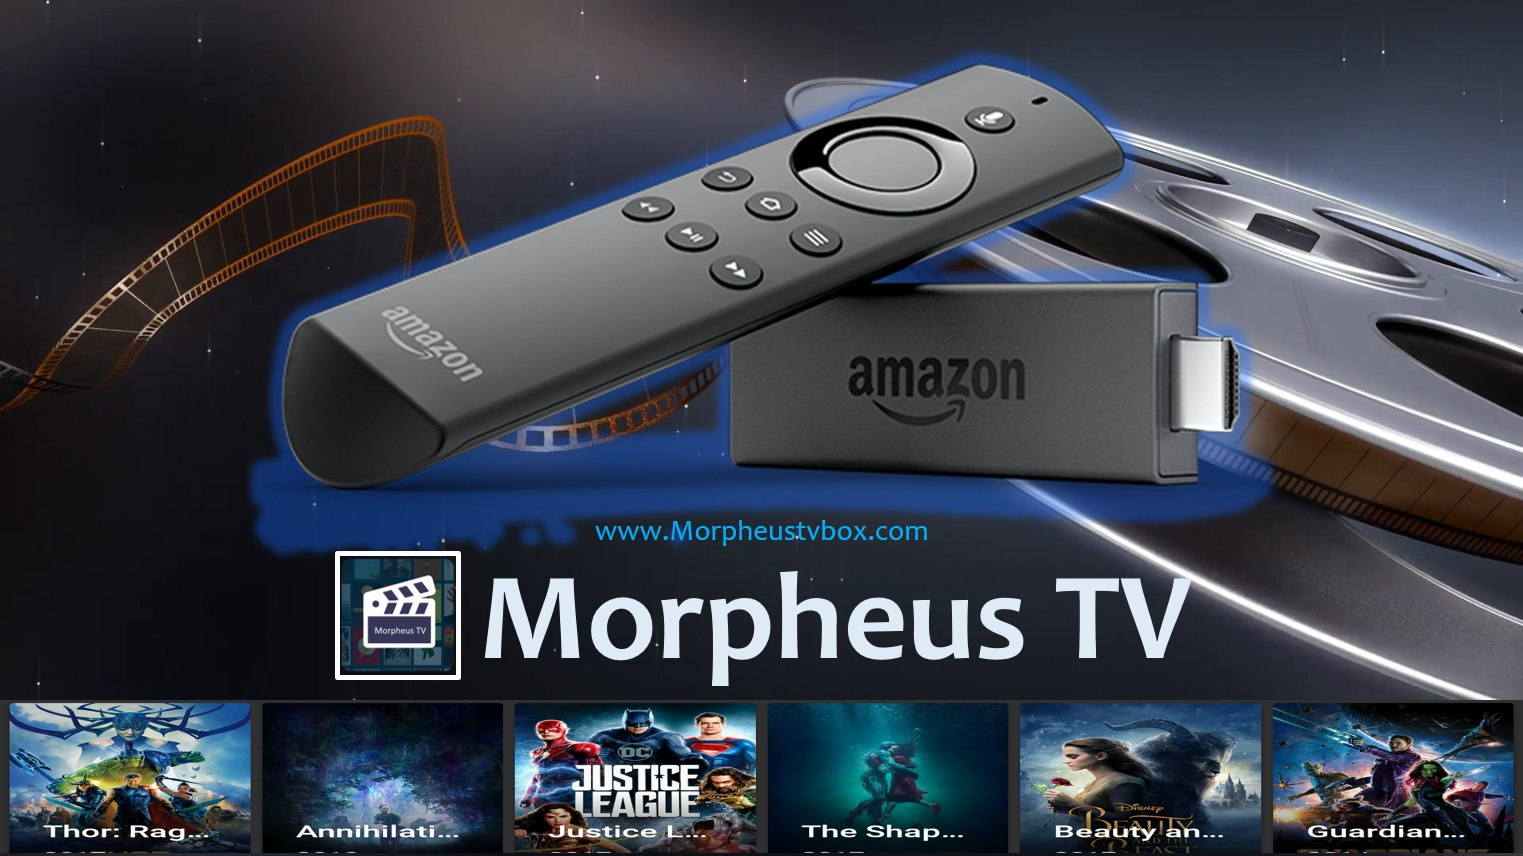 morpheus tv on amazon fire stick